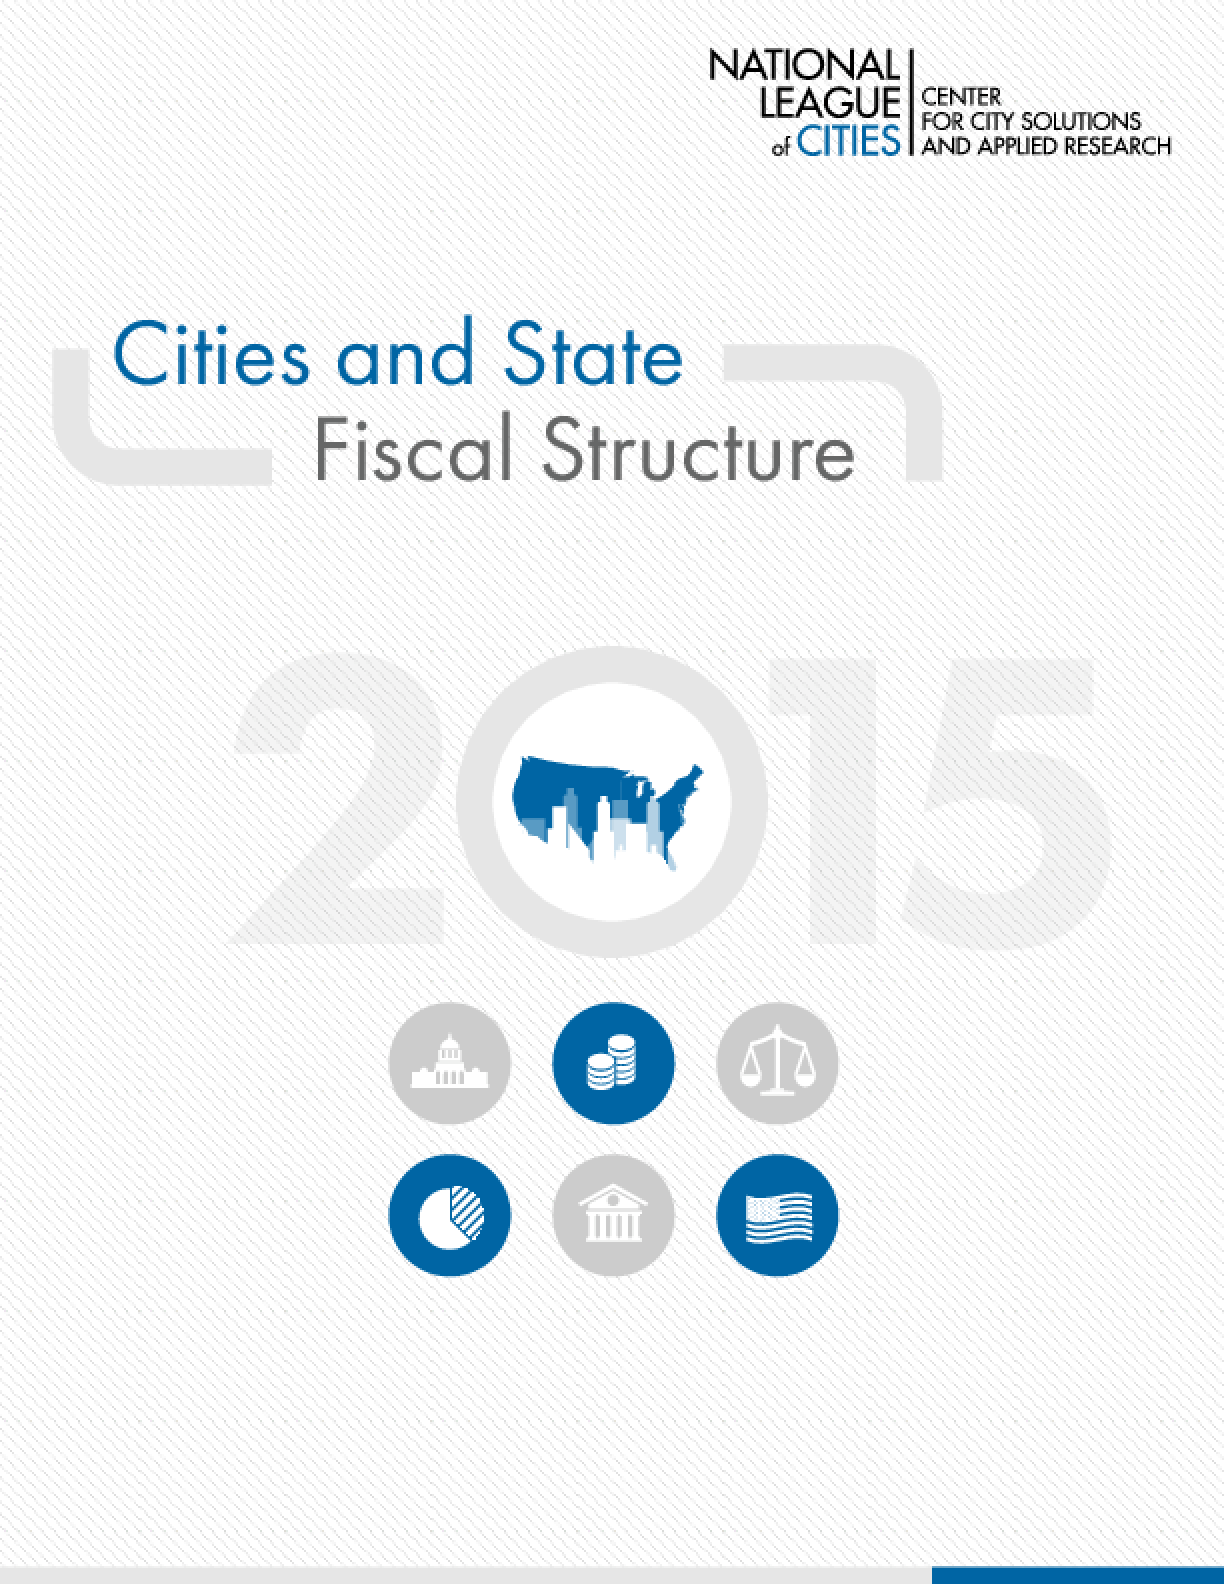 Cities and State Fiscal Structure